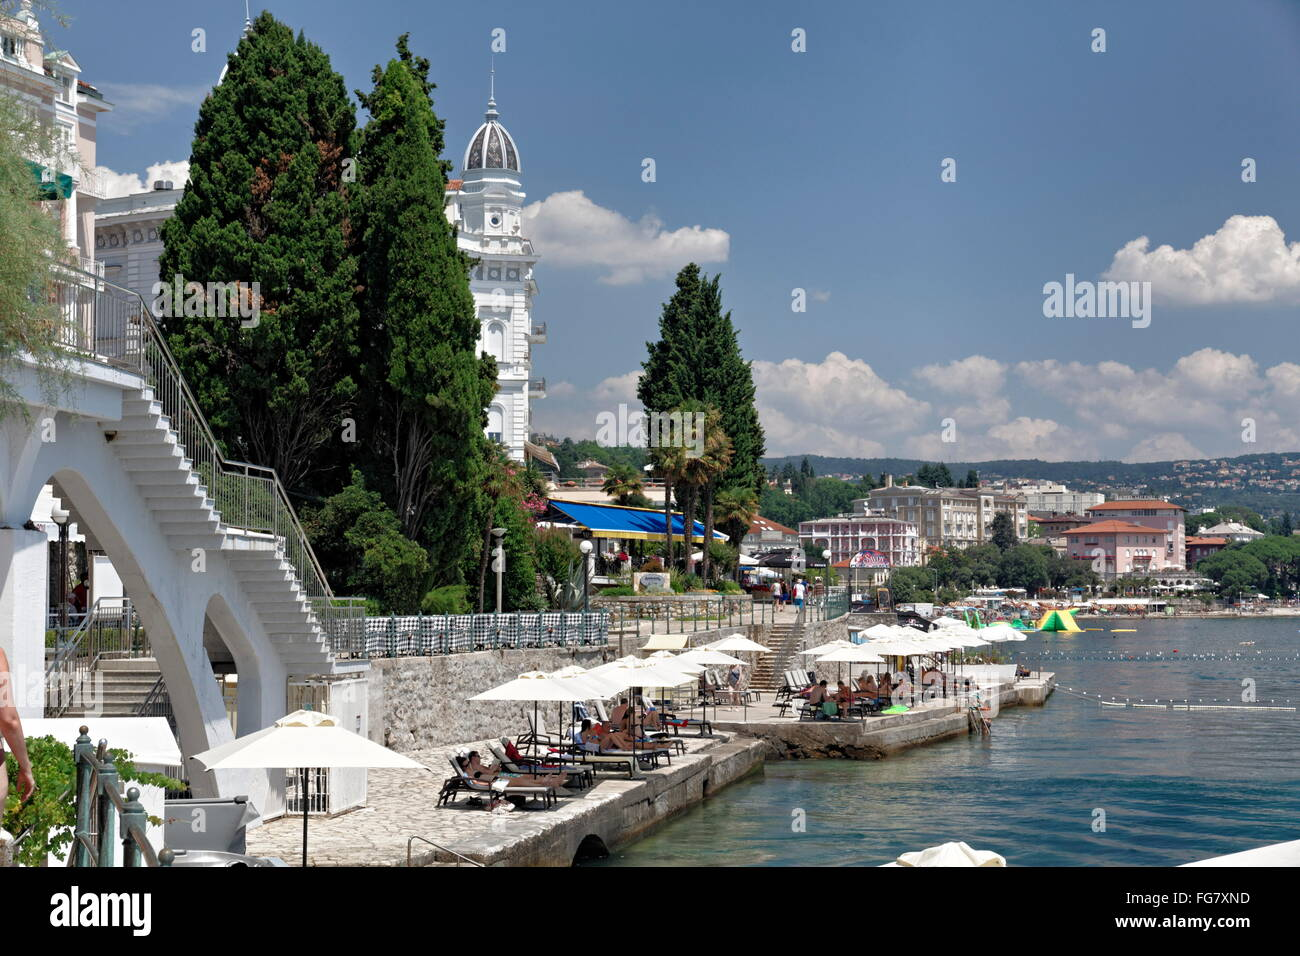 geography / travel, Croatia, Istria, Opatija, promenade and beach, Additional-Rights-Clearance-Info-Not-Available - Stock Image